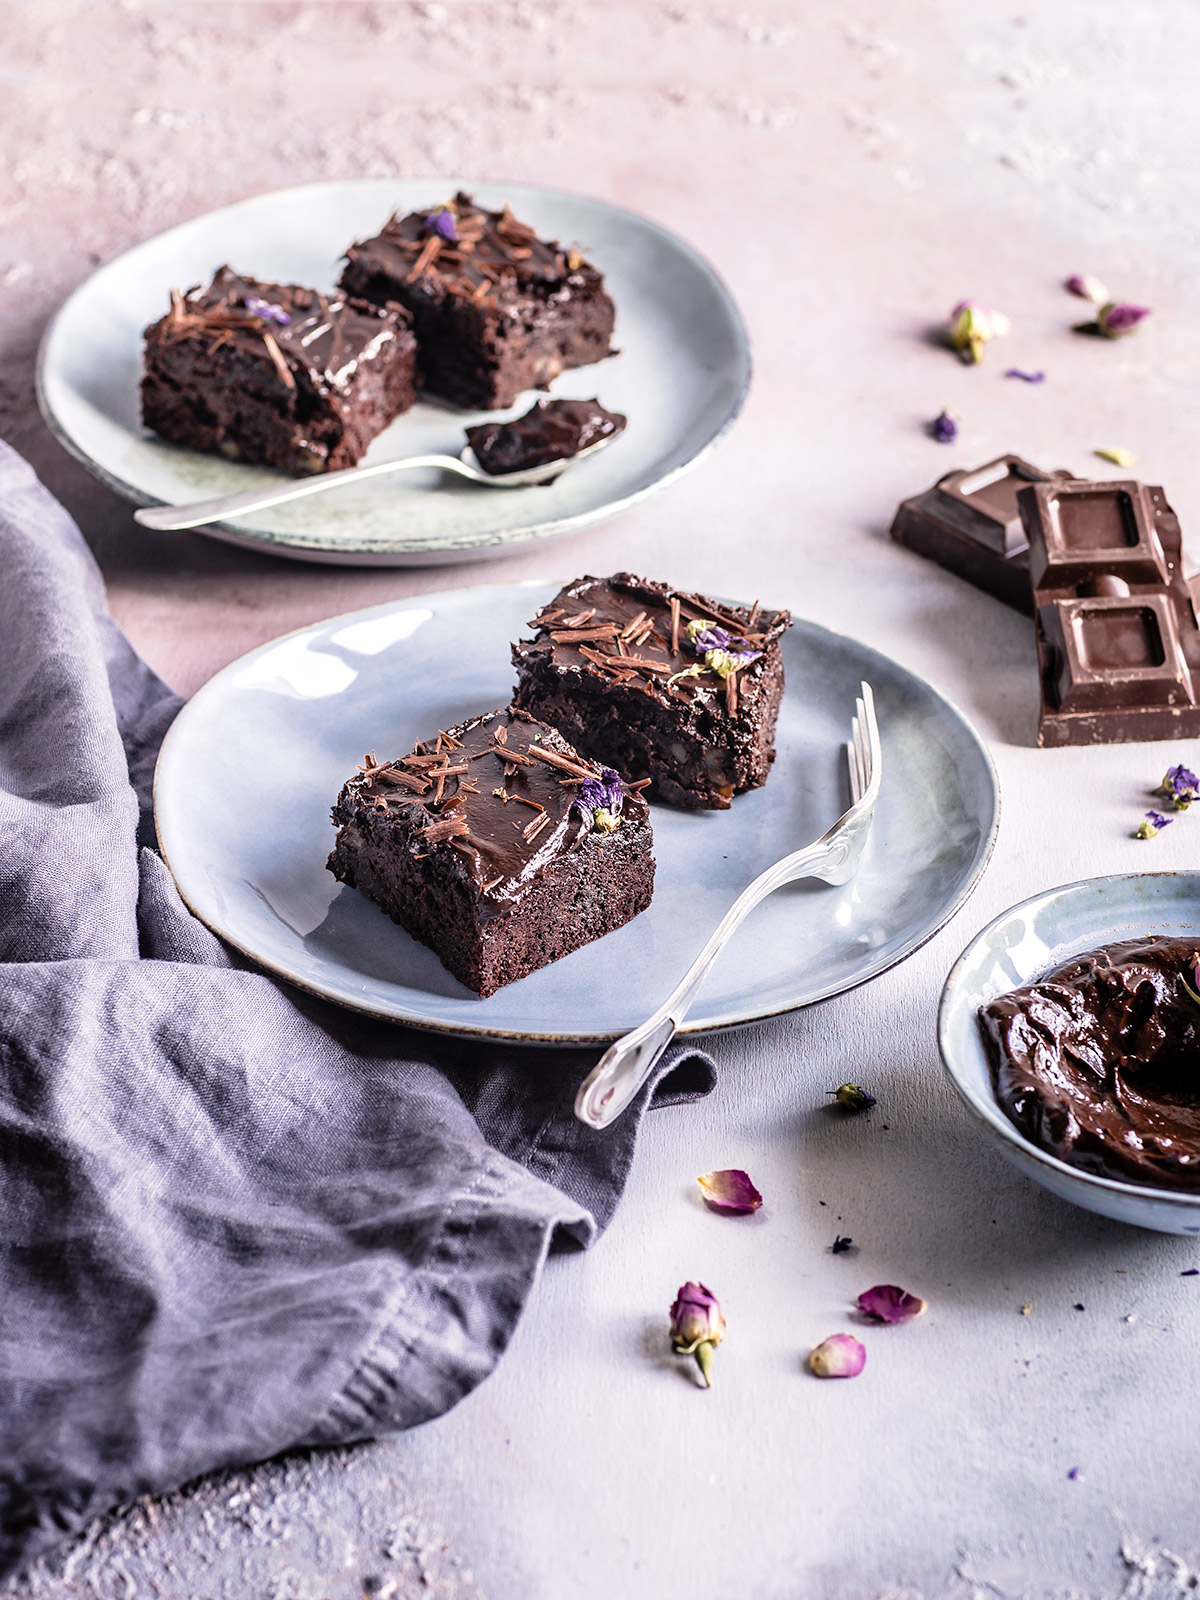 healthy VEGAN GLUTENFREE BROWNIE recipe with espresso coffee and coconut milk ricetta BROWNIES VEGAN SENZA GLUTINE facili light sani senza farine raffinate senza zuccheri raffinati simple